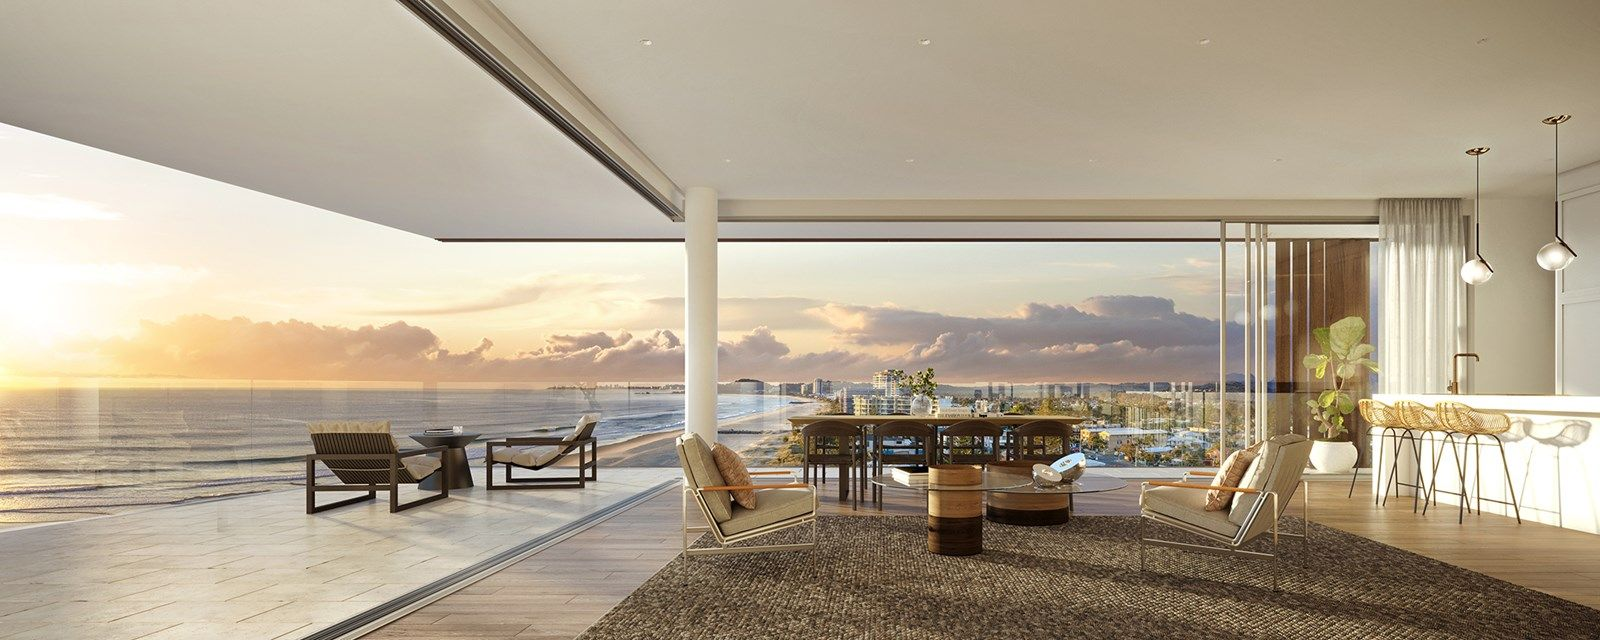 Siarn Palm Beach isapw7 The best views in SEQ: New developments designed for spectacular aspects